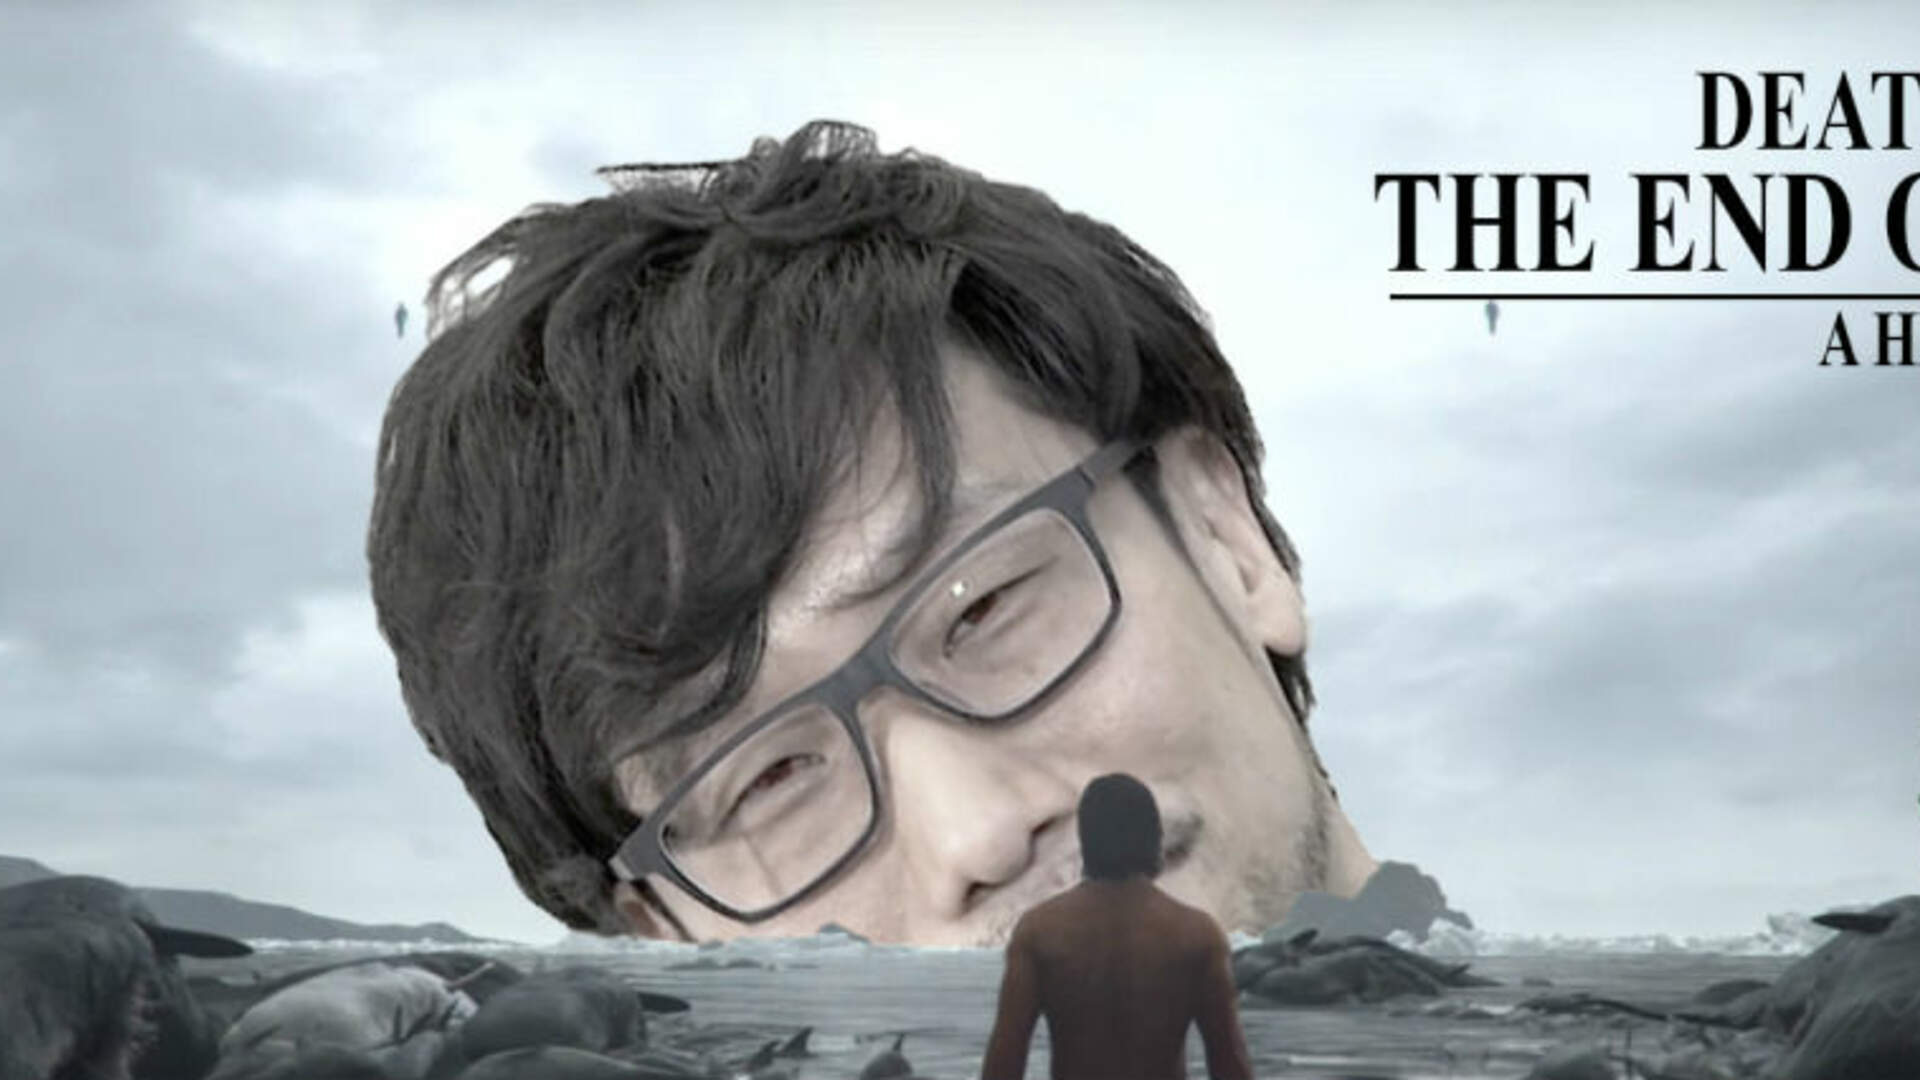 The Trailer for Death Stranding Was Exactly What E3 2016 Needed